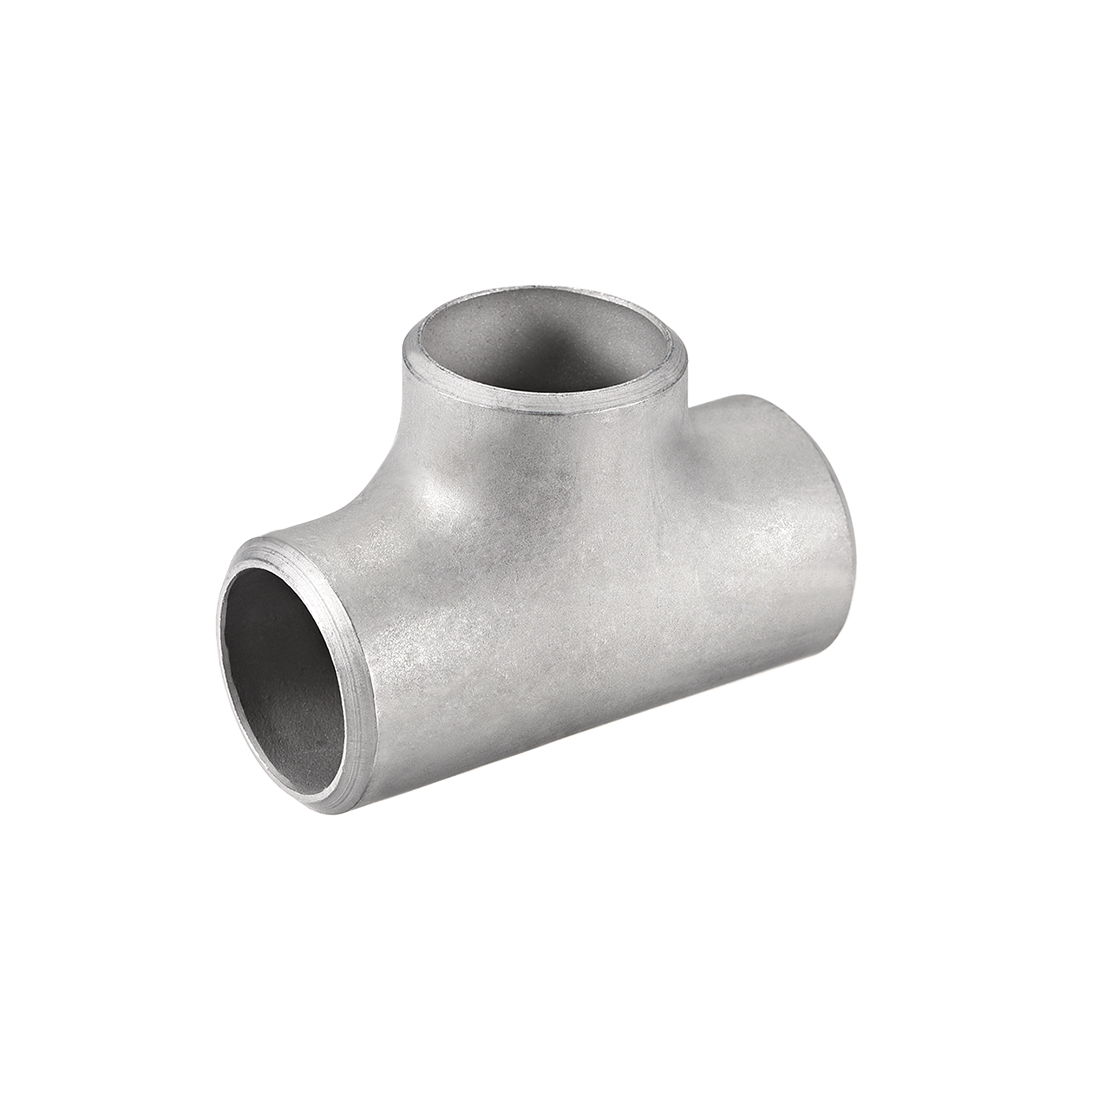 Stainless Steel 304 Pipe Fitting 27mmx29mmx27mm Tee Shaped Connector Coupler